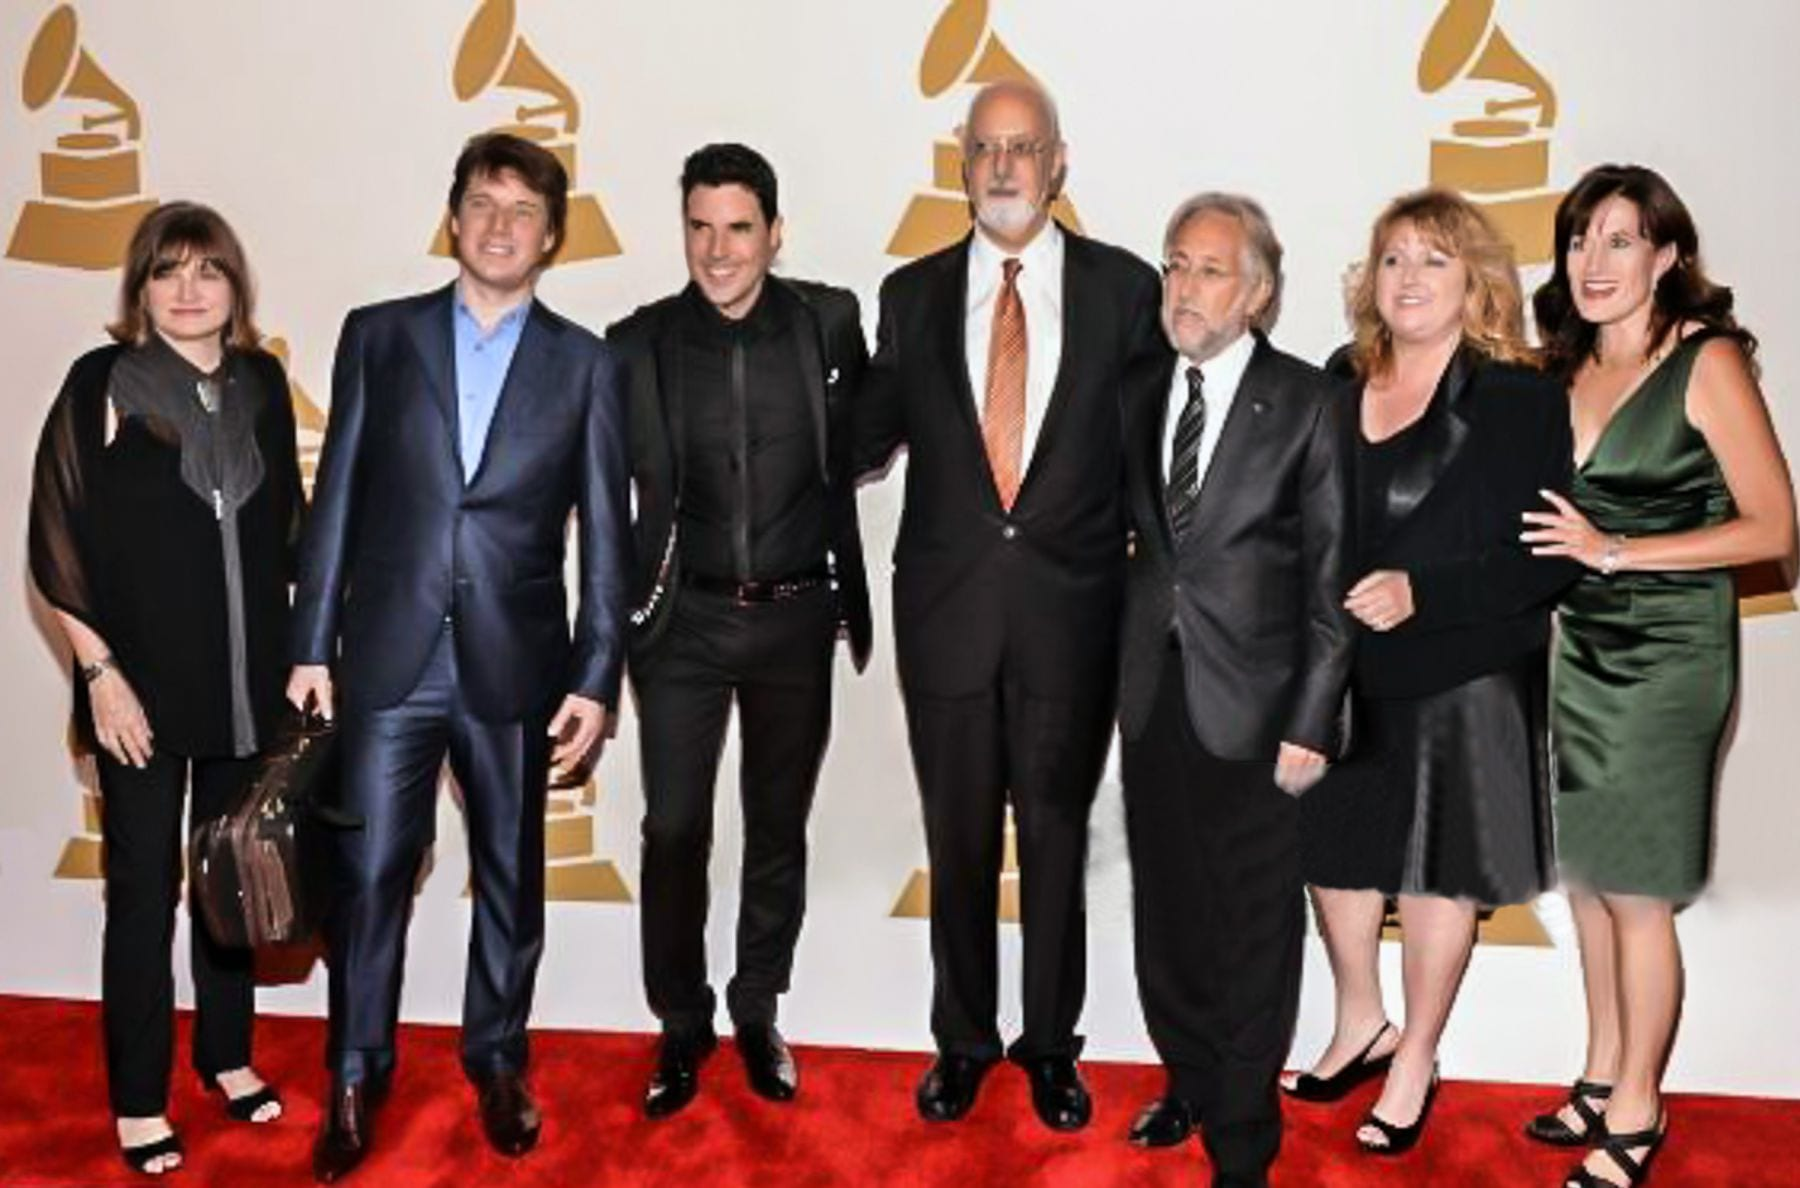 FRANKIE PERFORMS FOR THE RECORDING ACADEMY HONORS